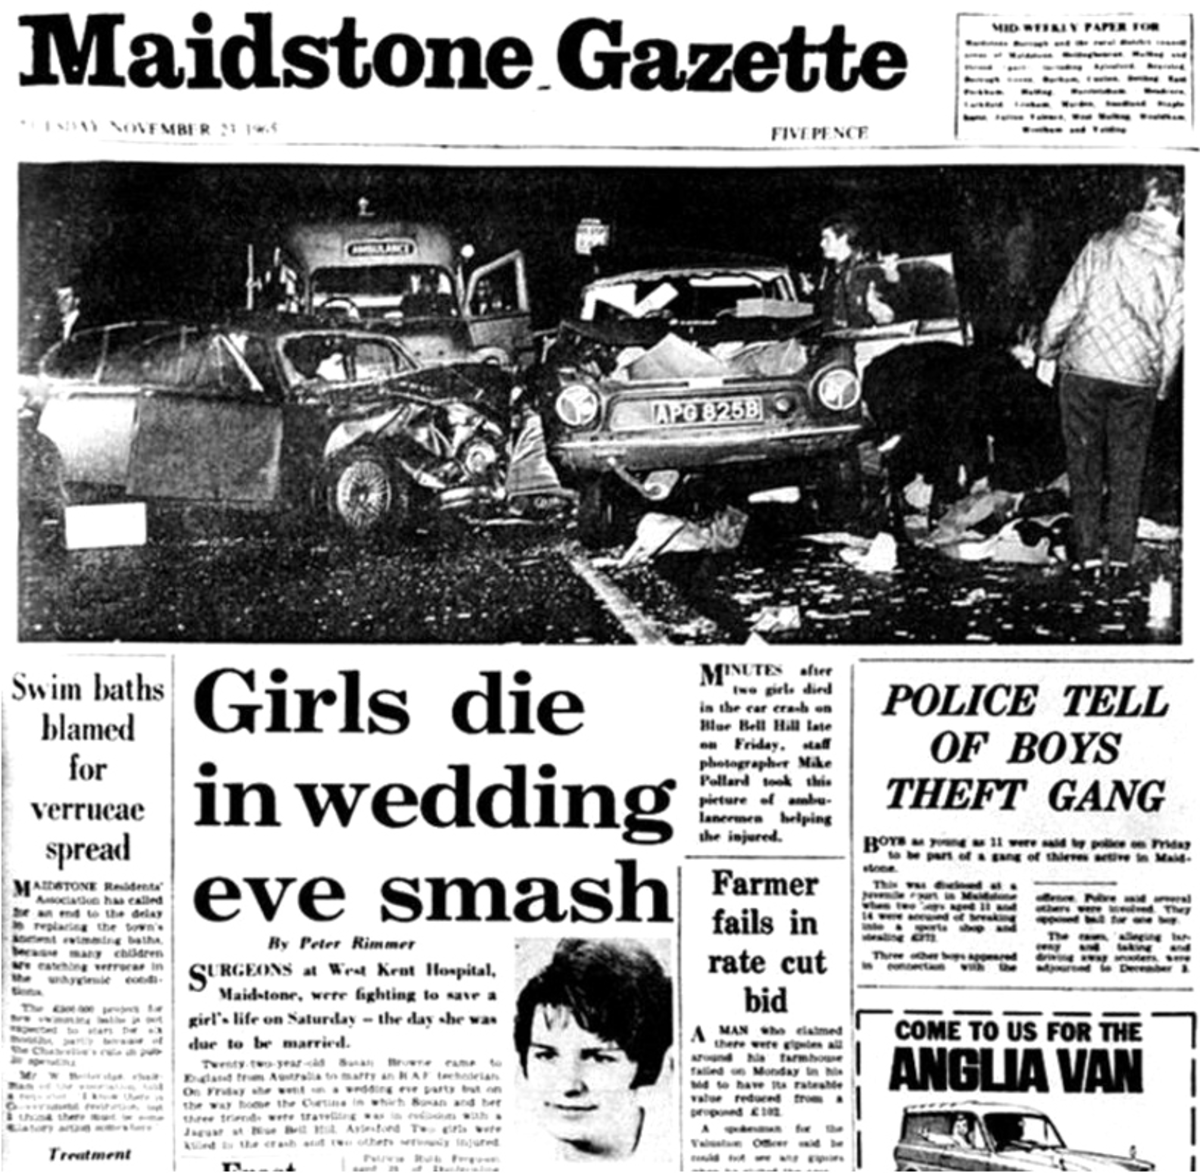 A newspaper report describing the crash